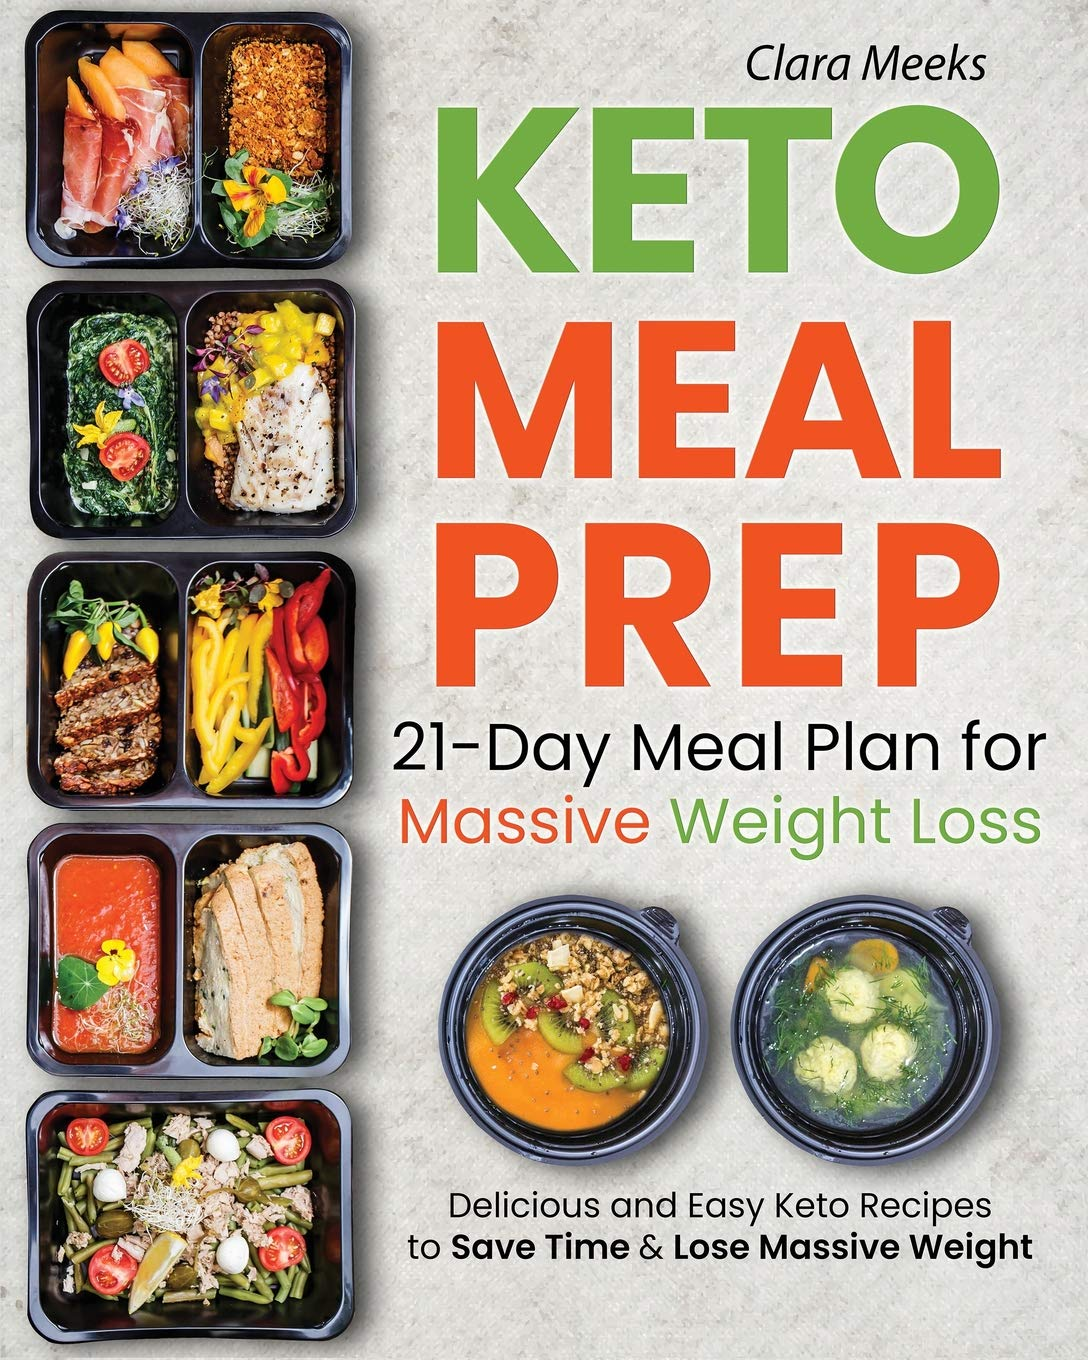 Keto Meal Prep 21 Day Meal Prep For Massive Weight Loss Delicious And Easy Keto Recipes To Save Time Lose Massive Weight Keto Recipes For Beginners Meeks Clara 9781796232592 Amazon Com Books